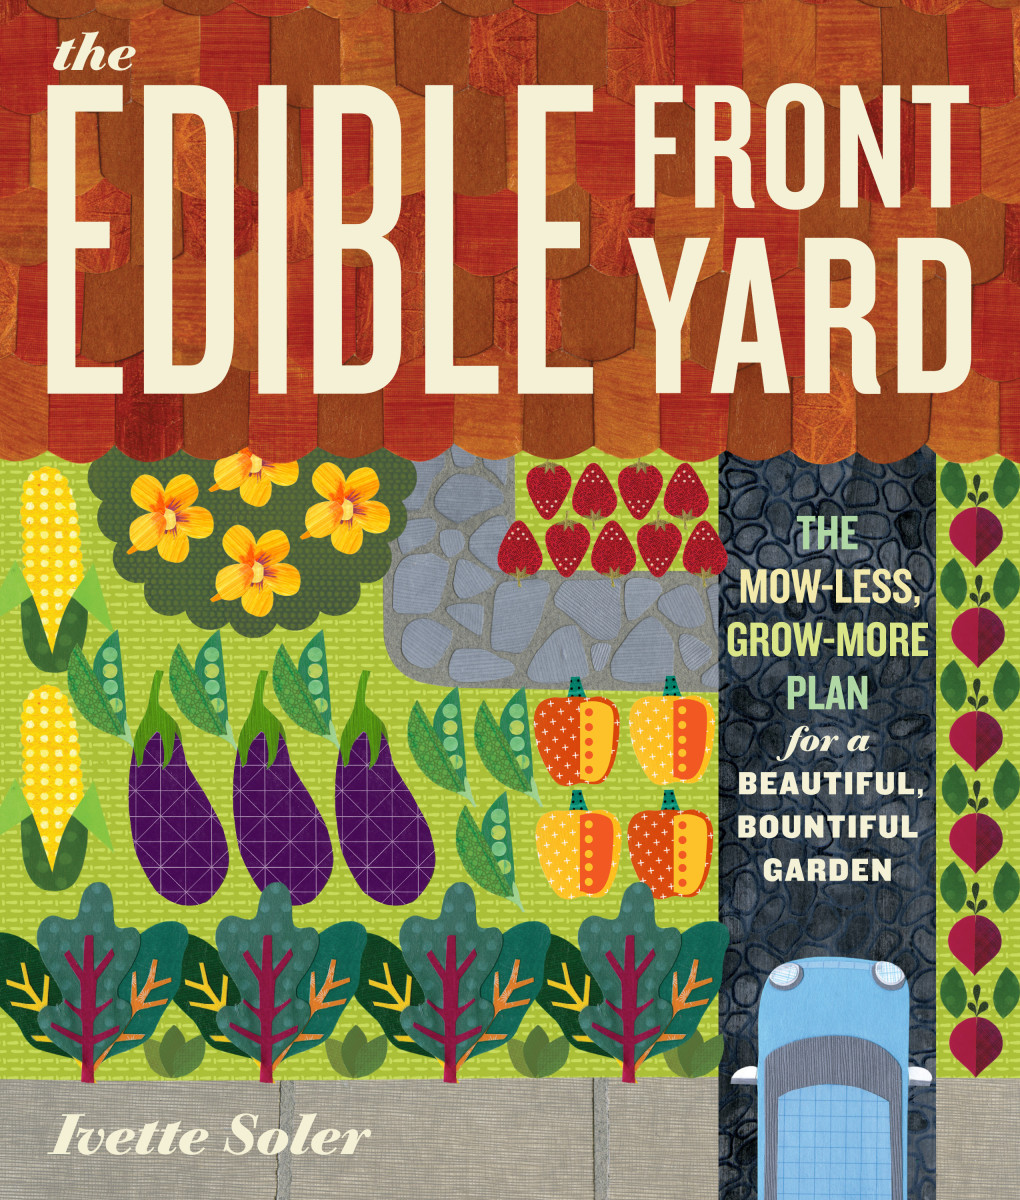 edible front yard cover